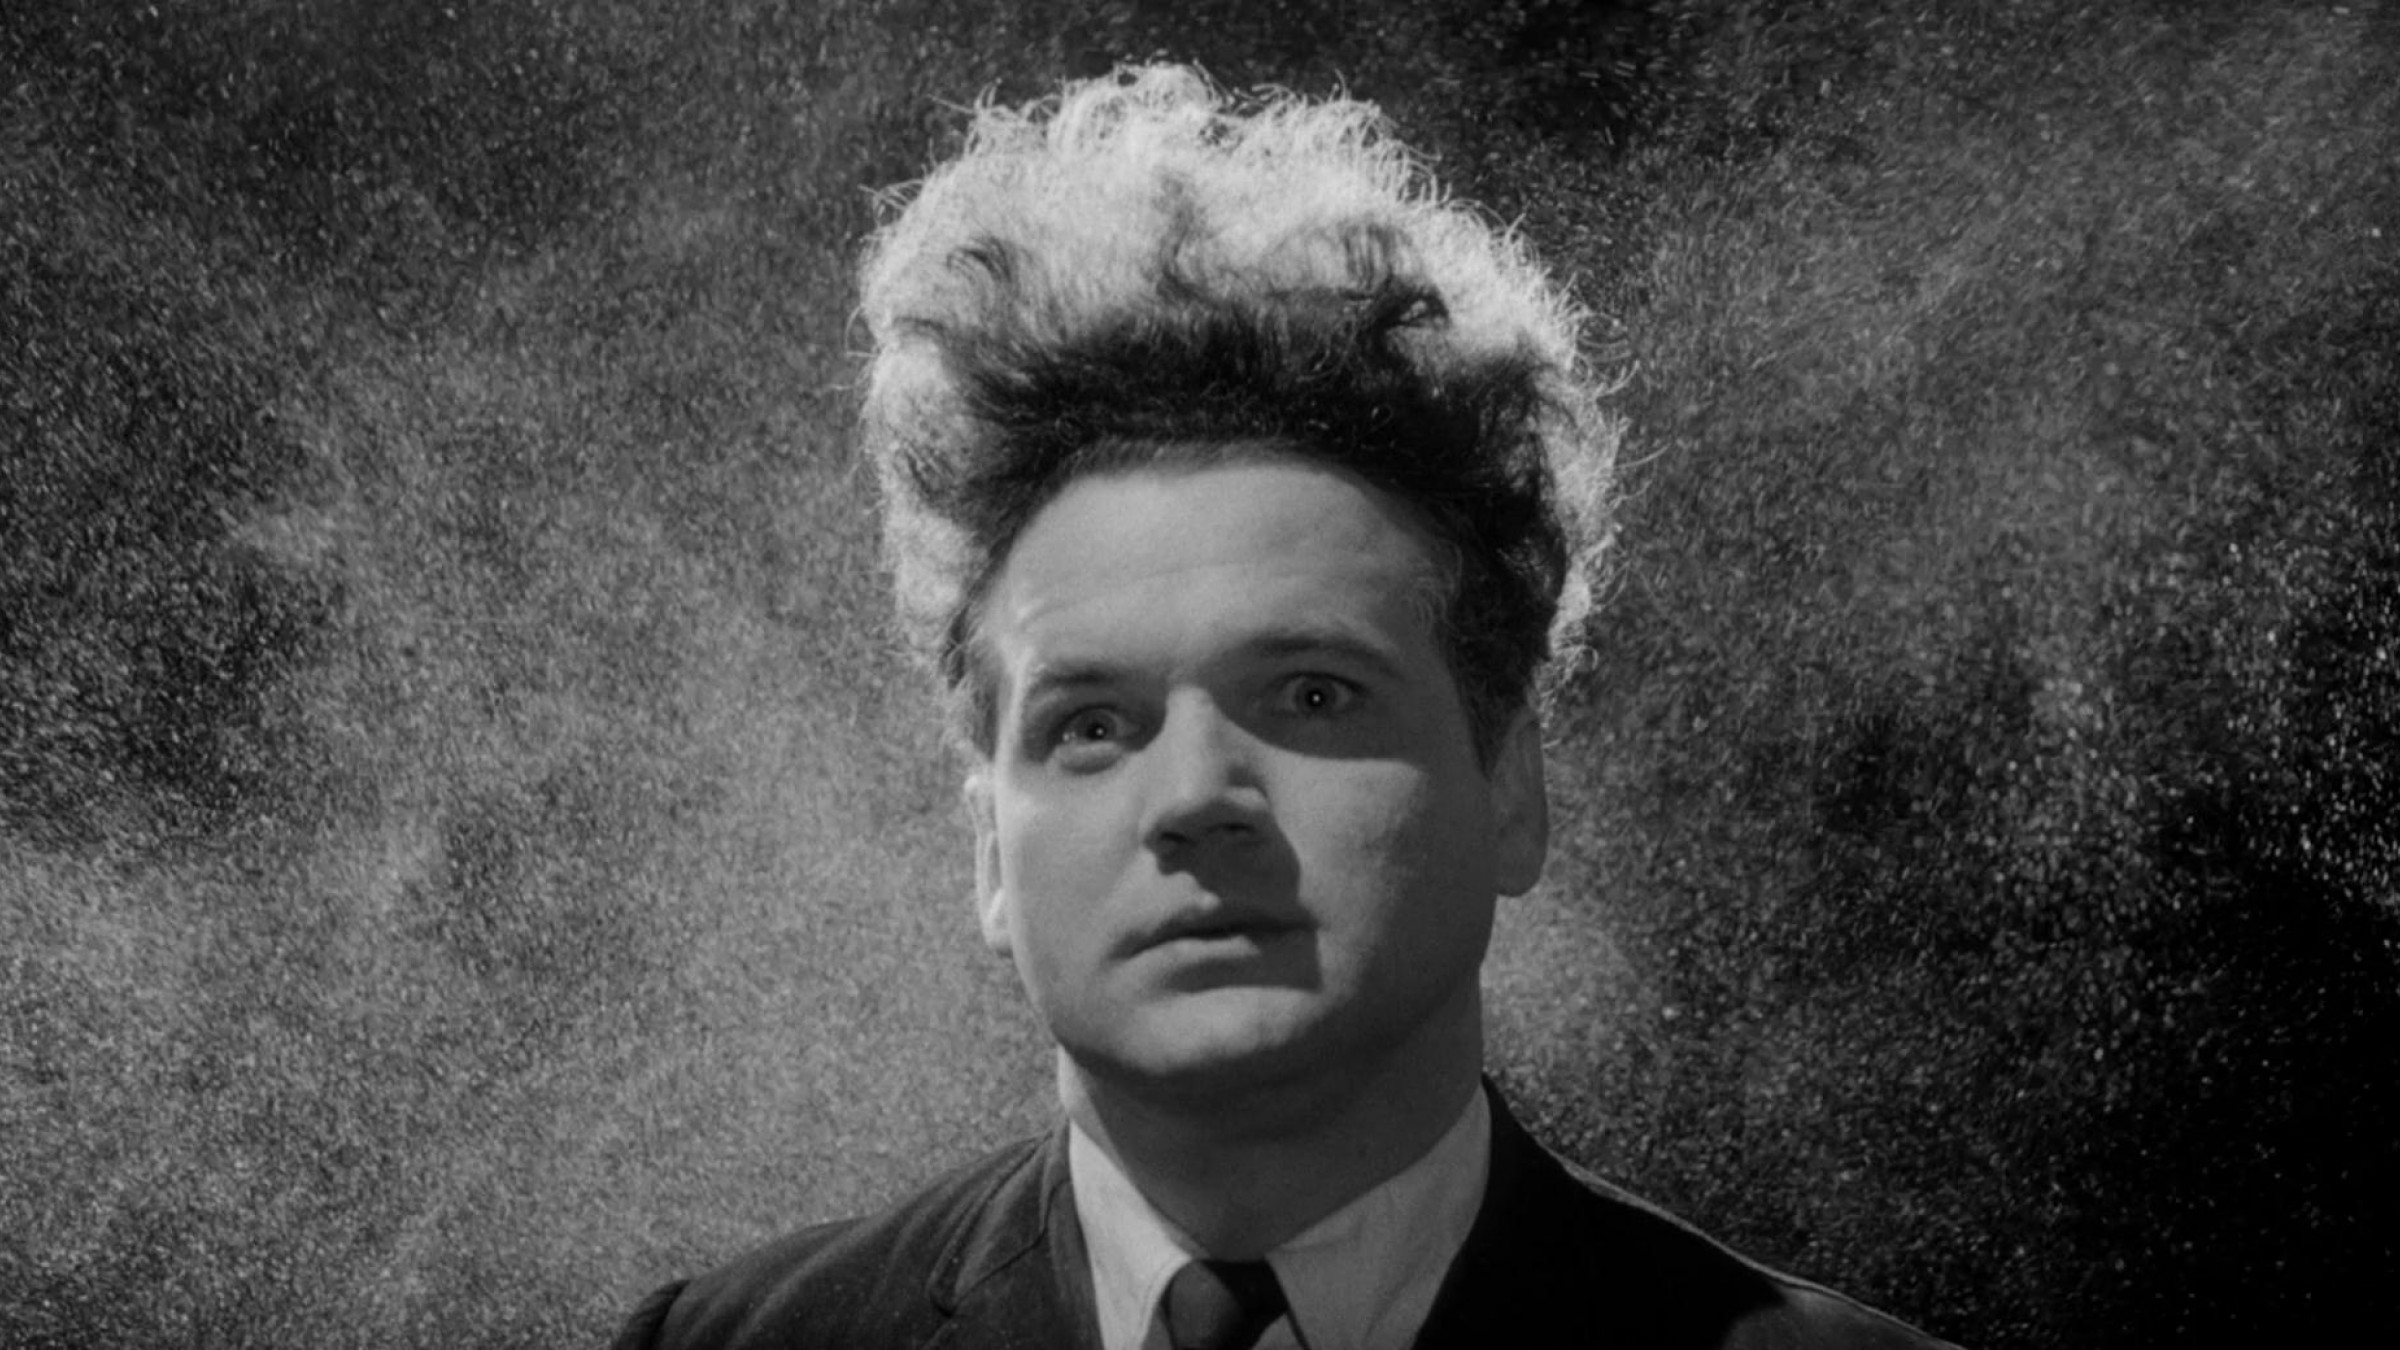 Unnerving Ambient Sounds in the Films of David Lynch